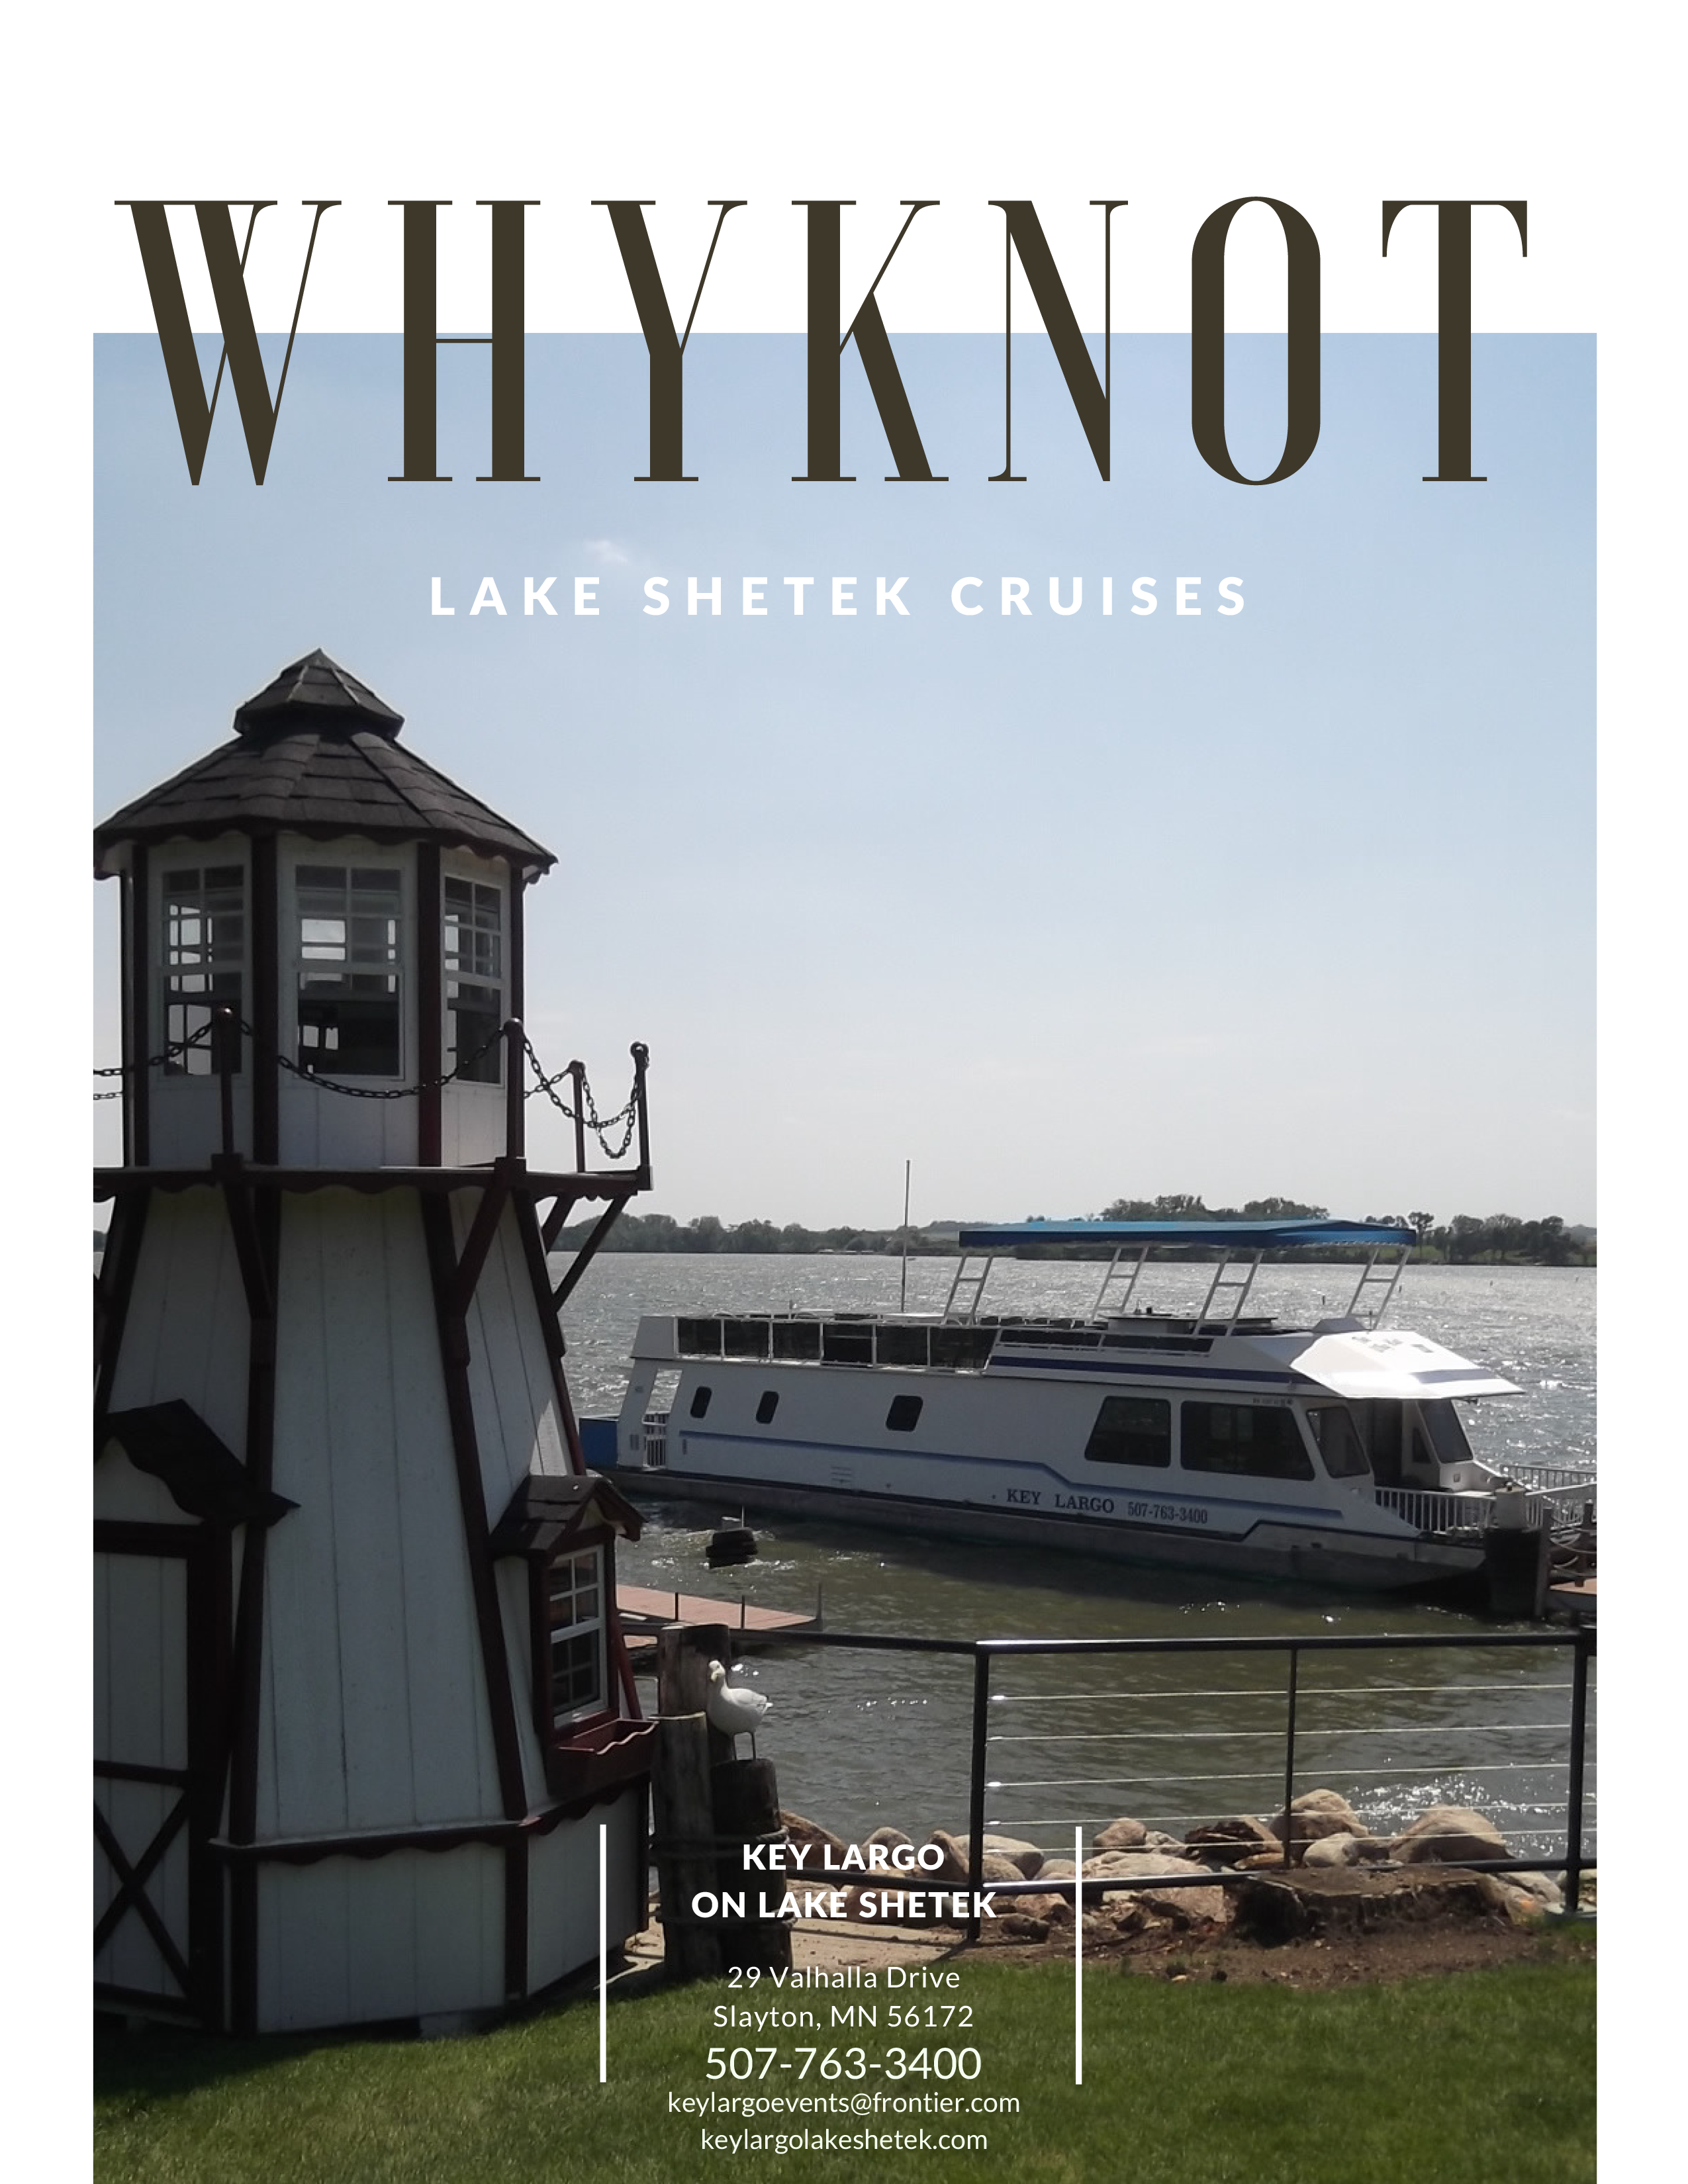 why knot lake shetek cruises. key largo on lake shetek. 29 vahala drive, slayton, mn, 56172. 507-763-3400. keylargoevents@frontier.com. keylargoshetek.com